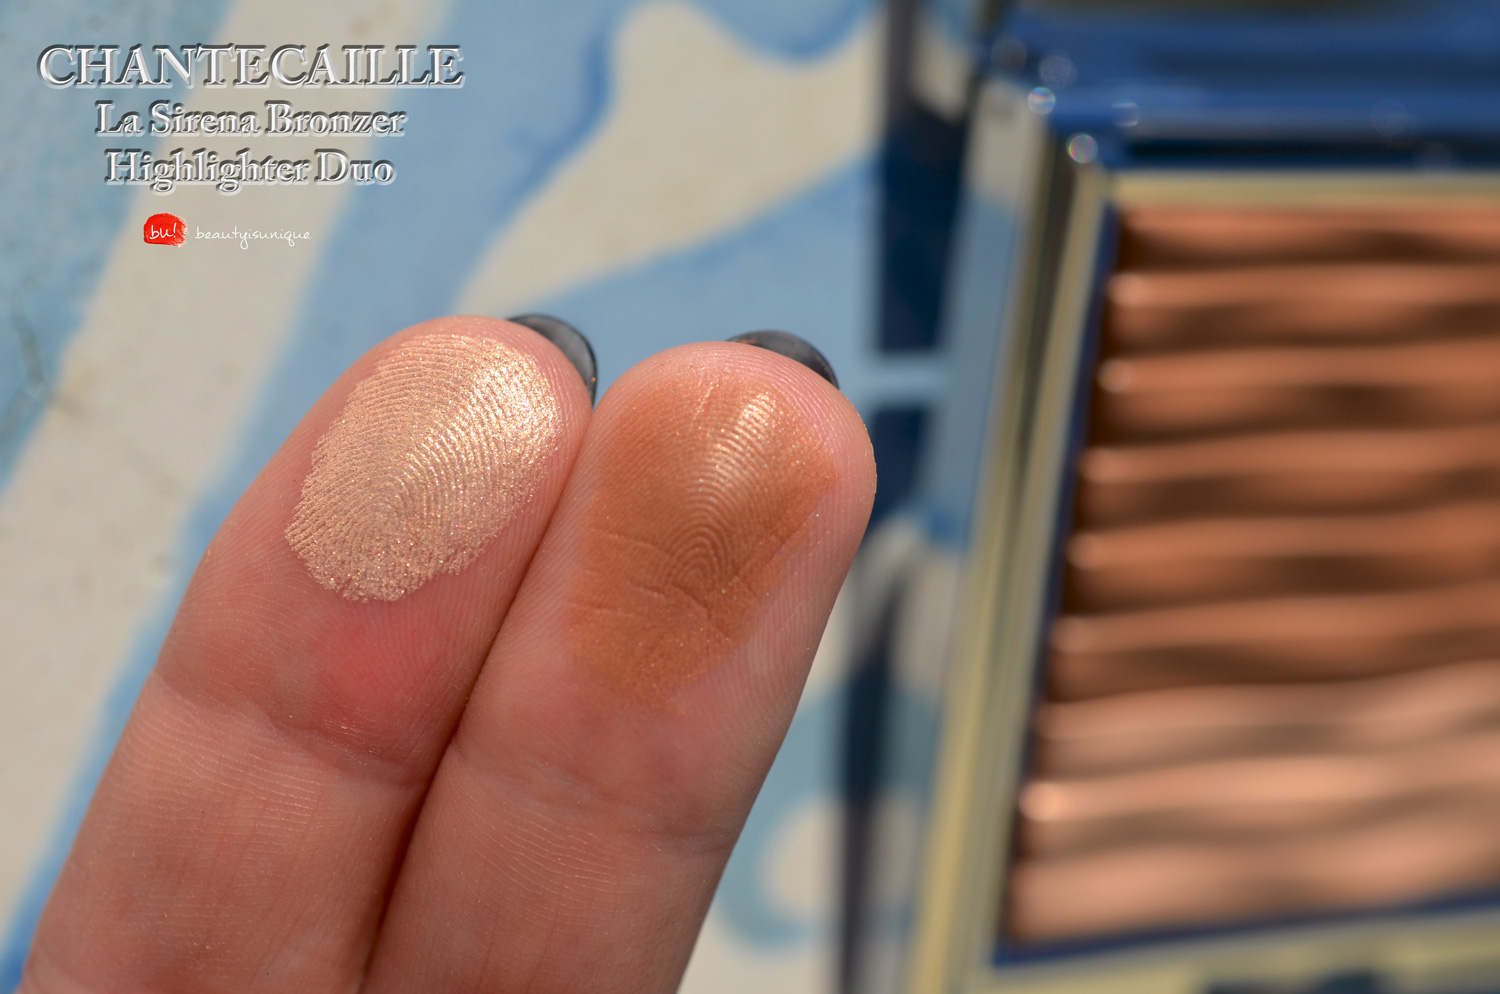 chantecaille-la-sirena-bronzer-highlighter-duo-swatches